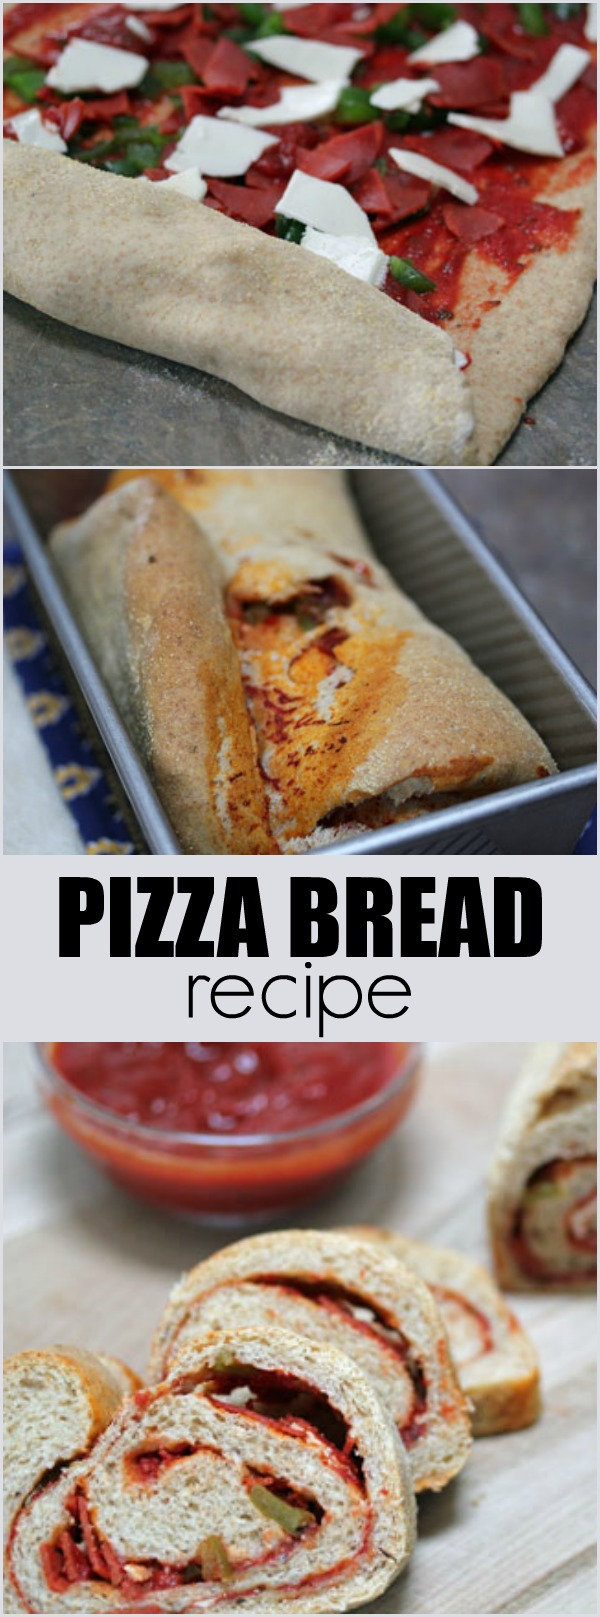 pizza-bread-recipe